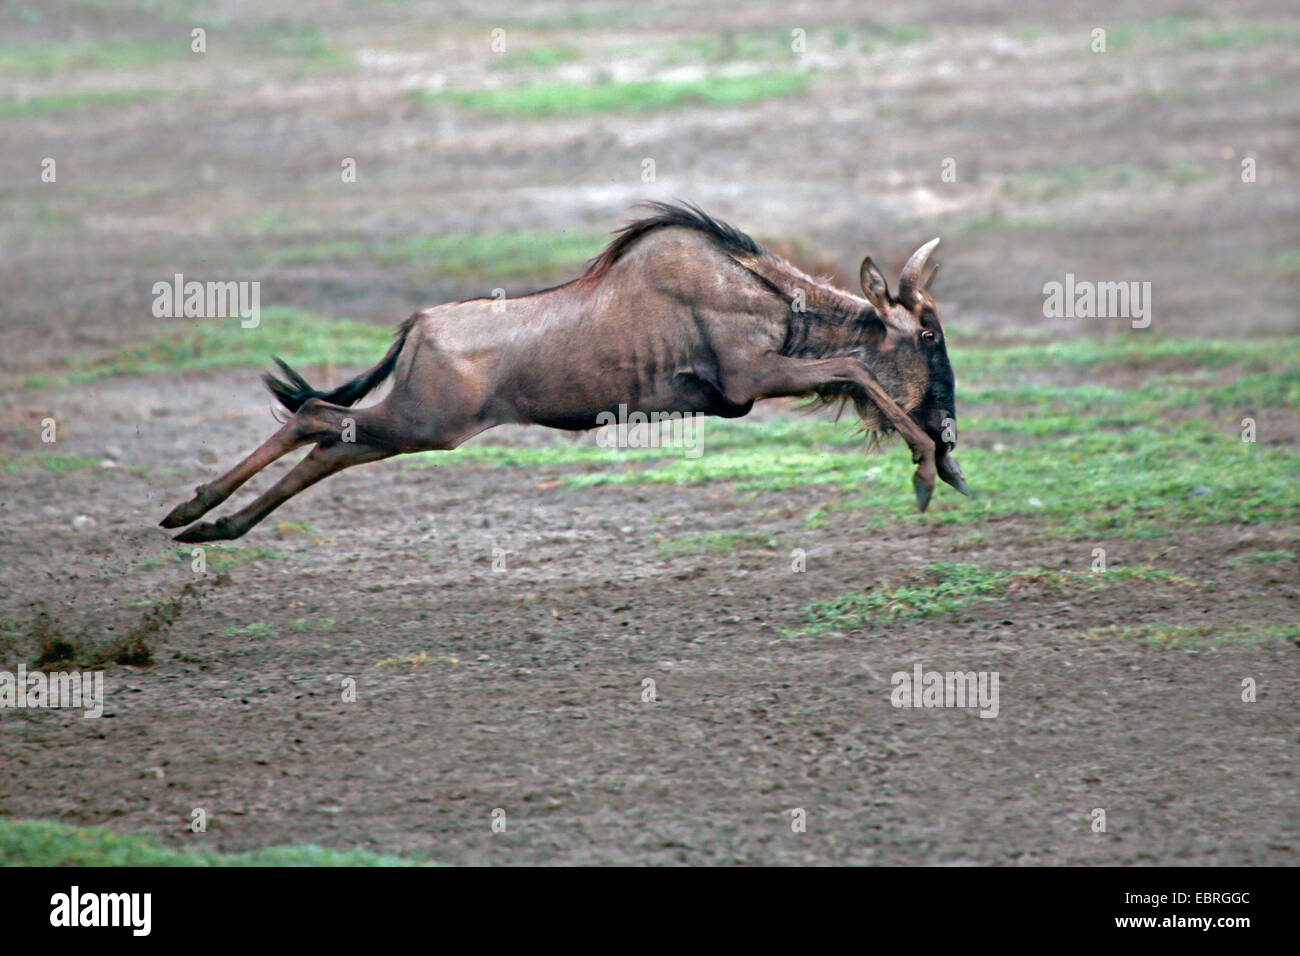 blue wildebeest, brindled gnu, white-bearded wildebeest (Connochaetes taurinus), gnu fleeing, Tanzania, Serengeti - Stock Image